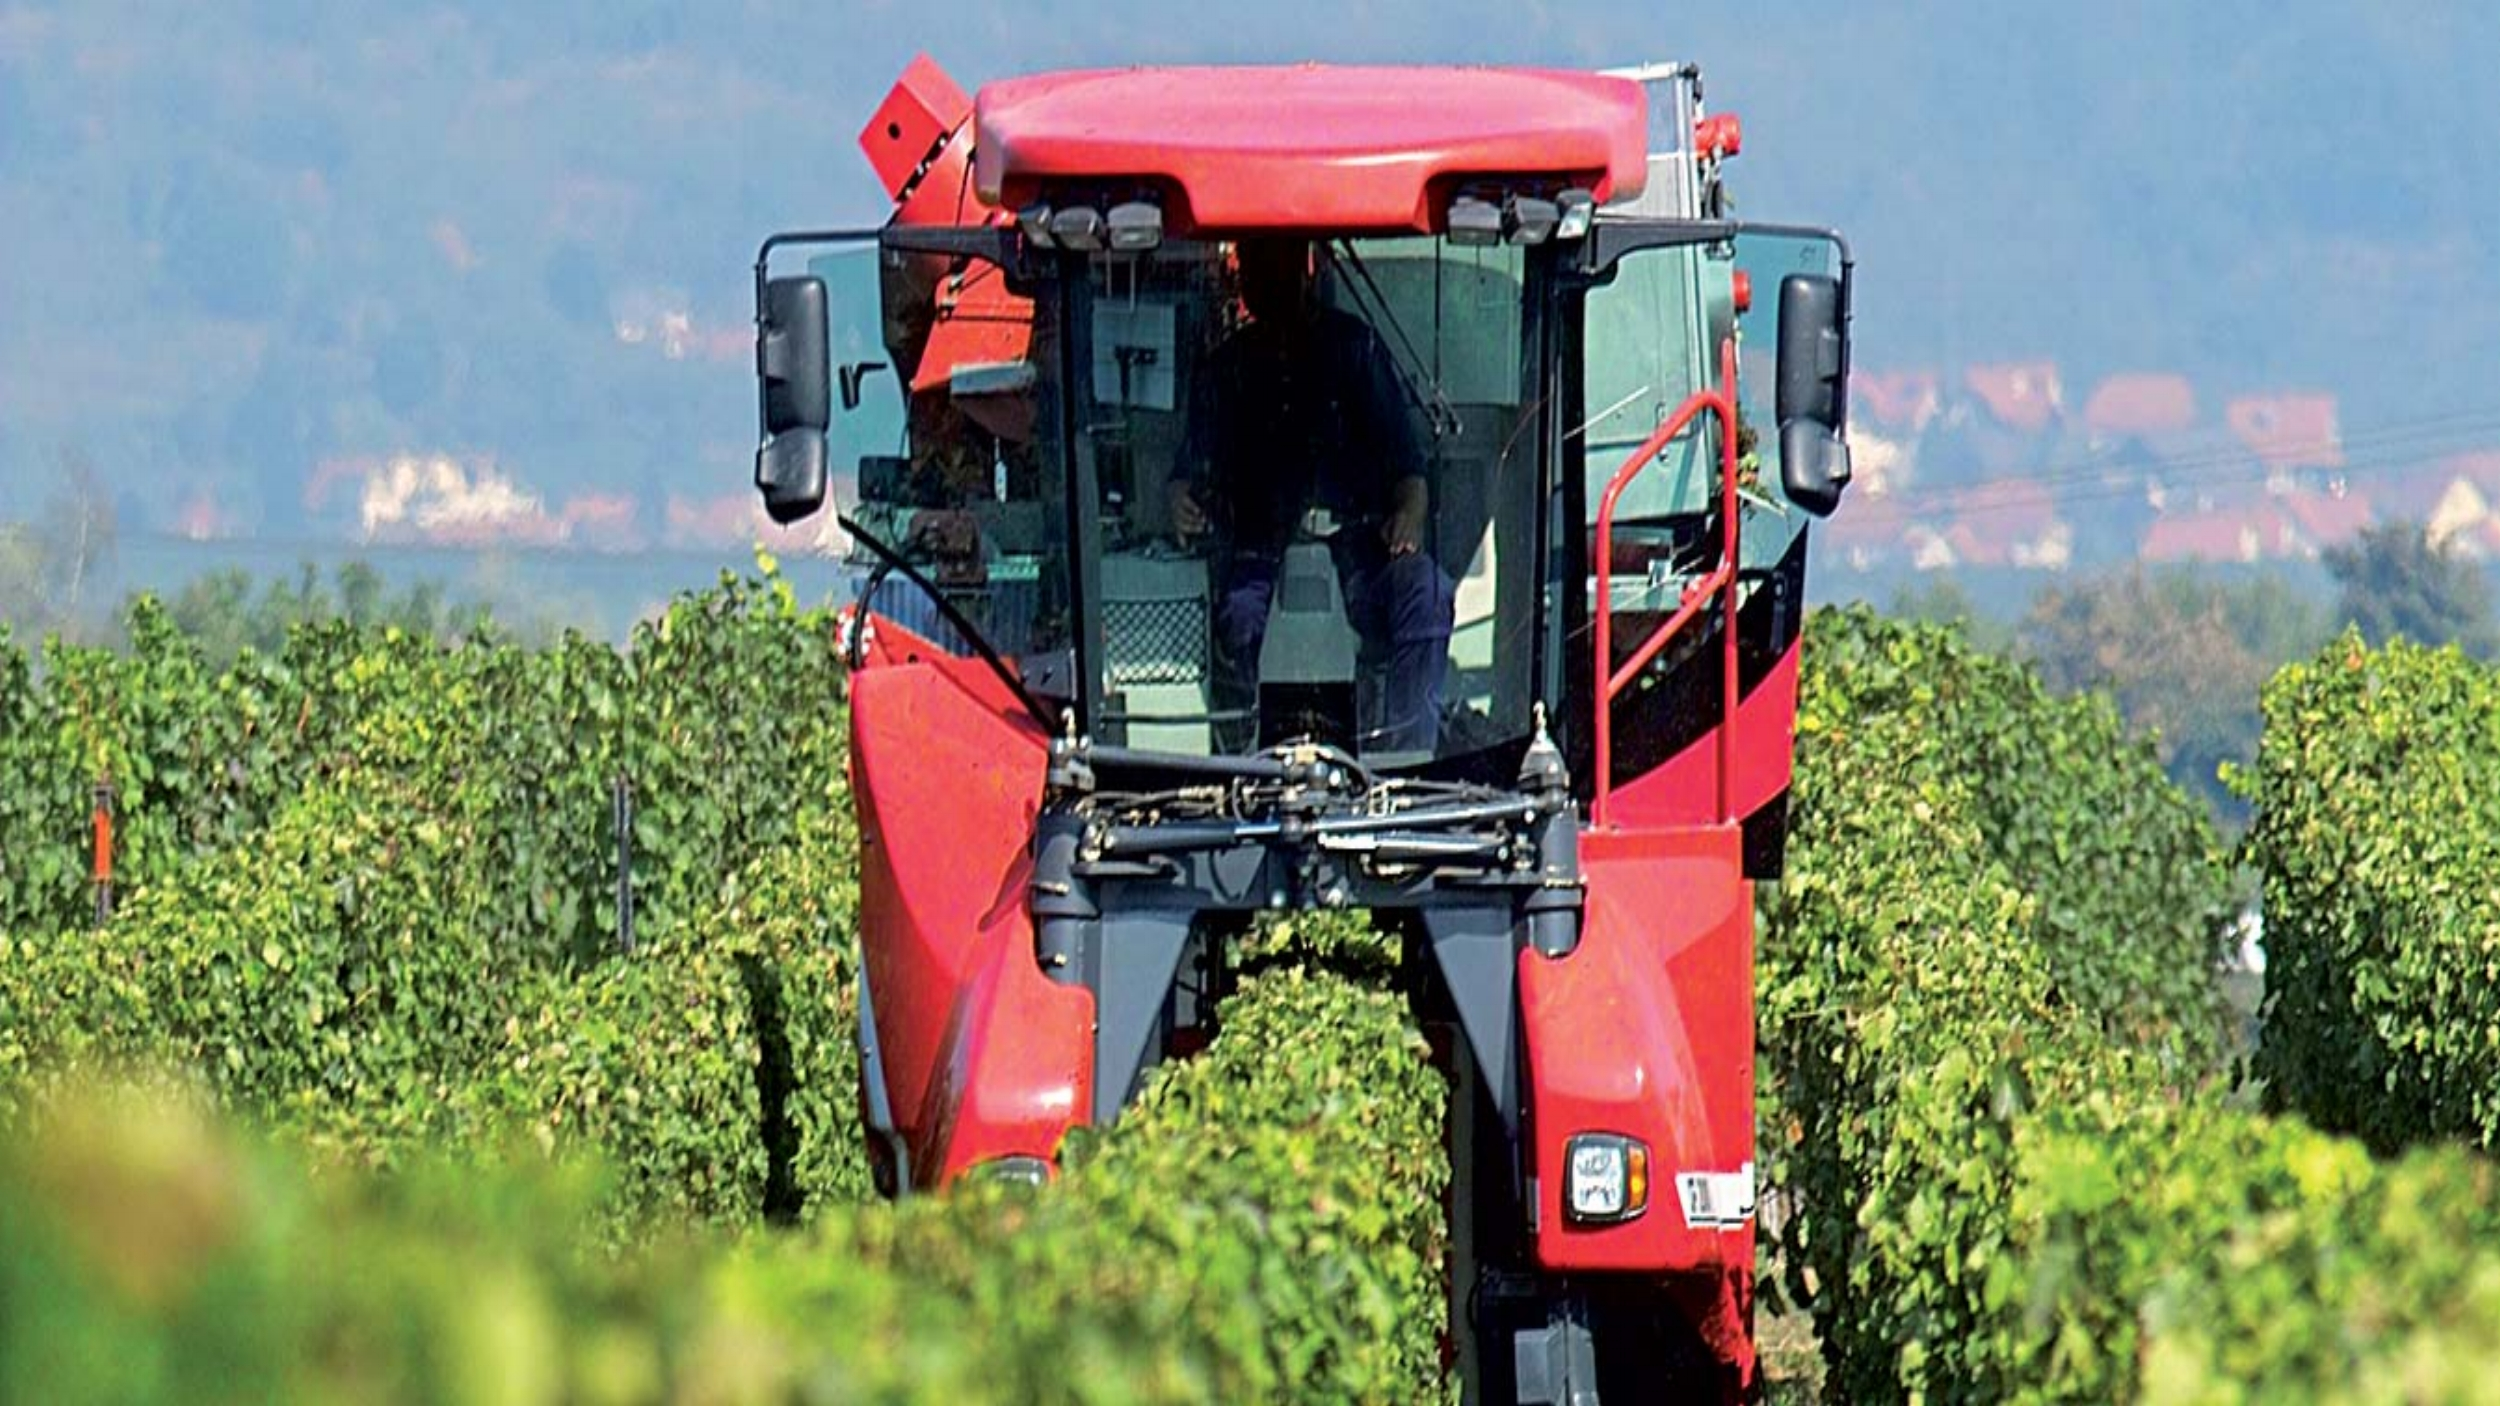 Latest Practices - At Sheridan Contracting we employ caring and experienced people, implementing SWNZ practices, keeping pace with latest practices in progressive, quality focused winegrowing.